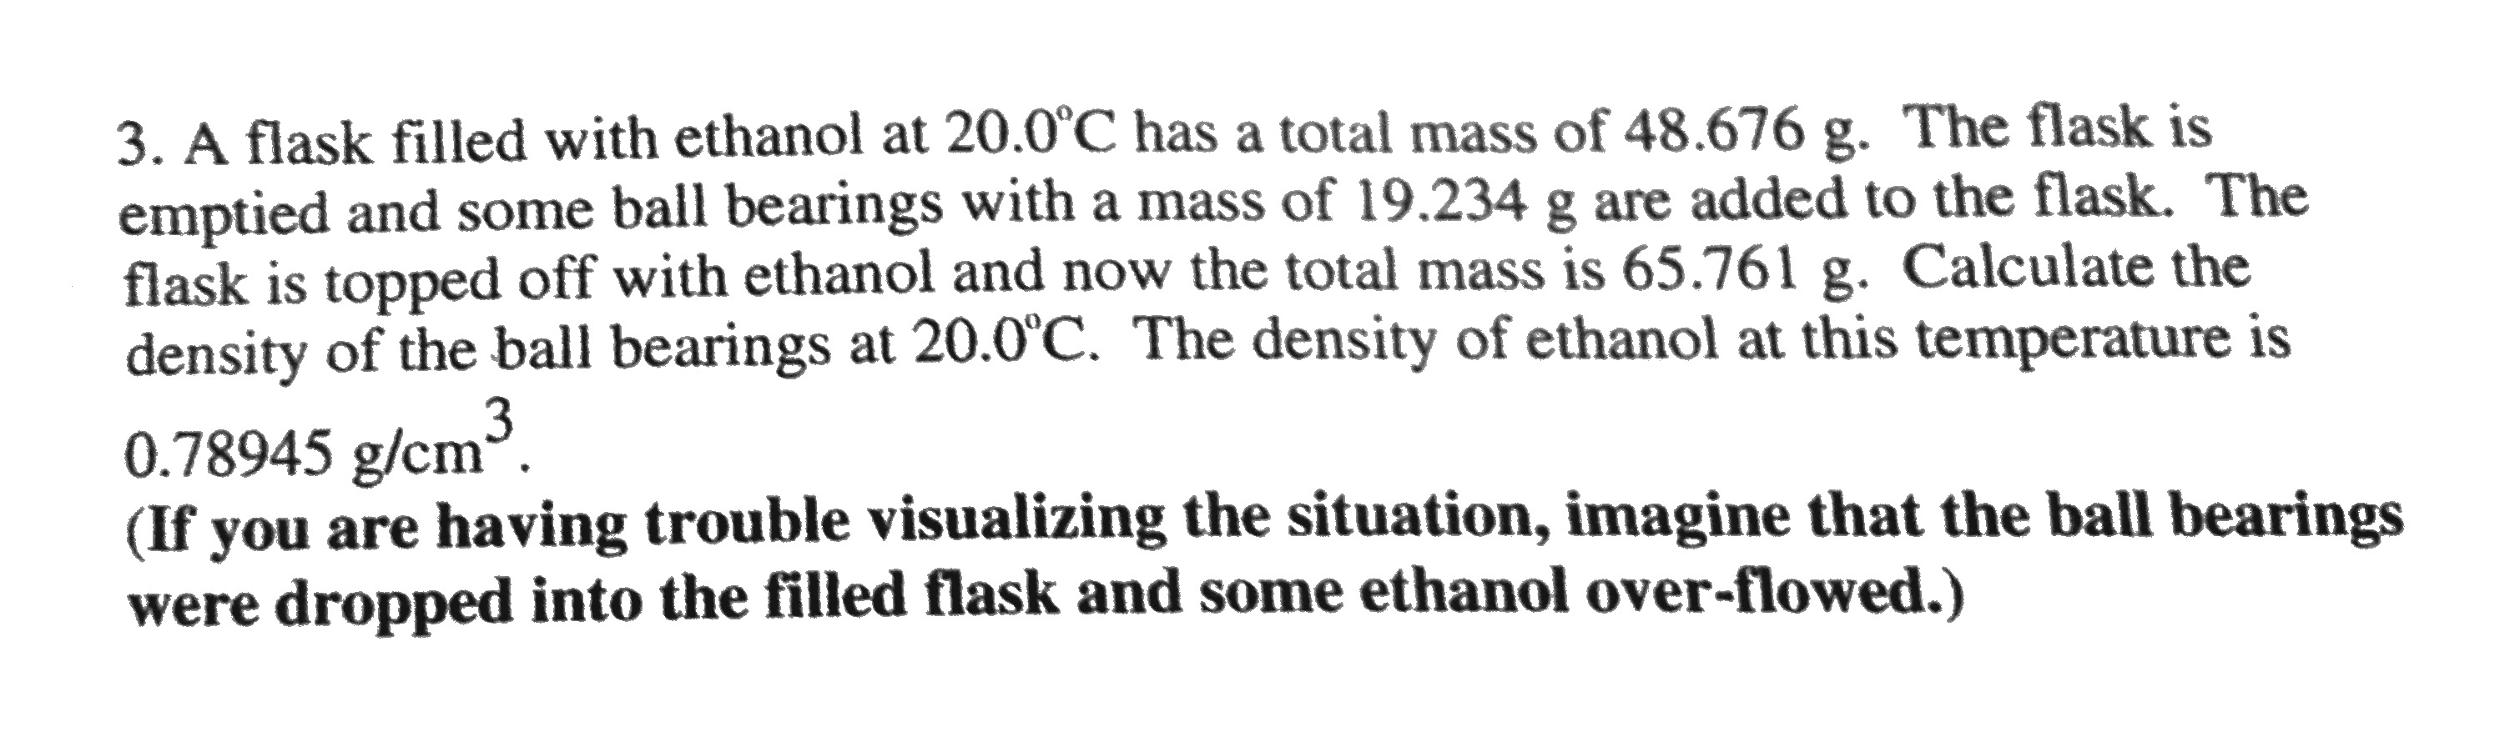 A flask filled with ethanol at 20.0 degree C has a